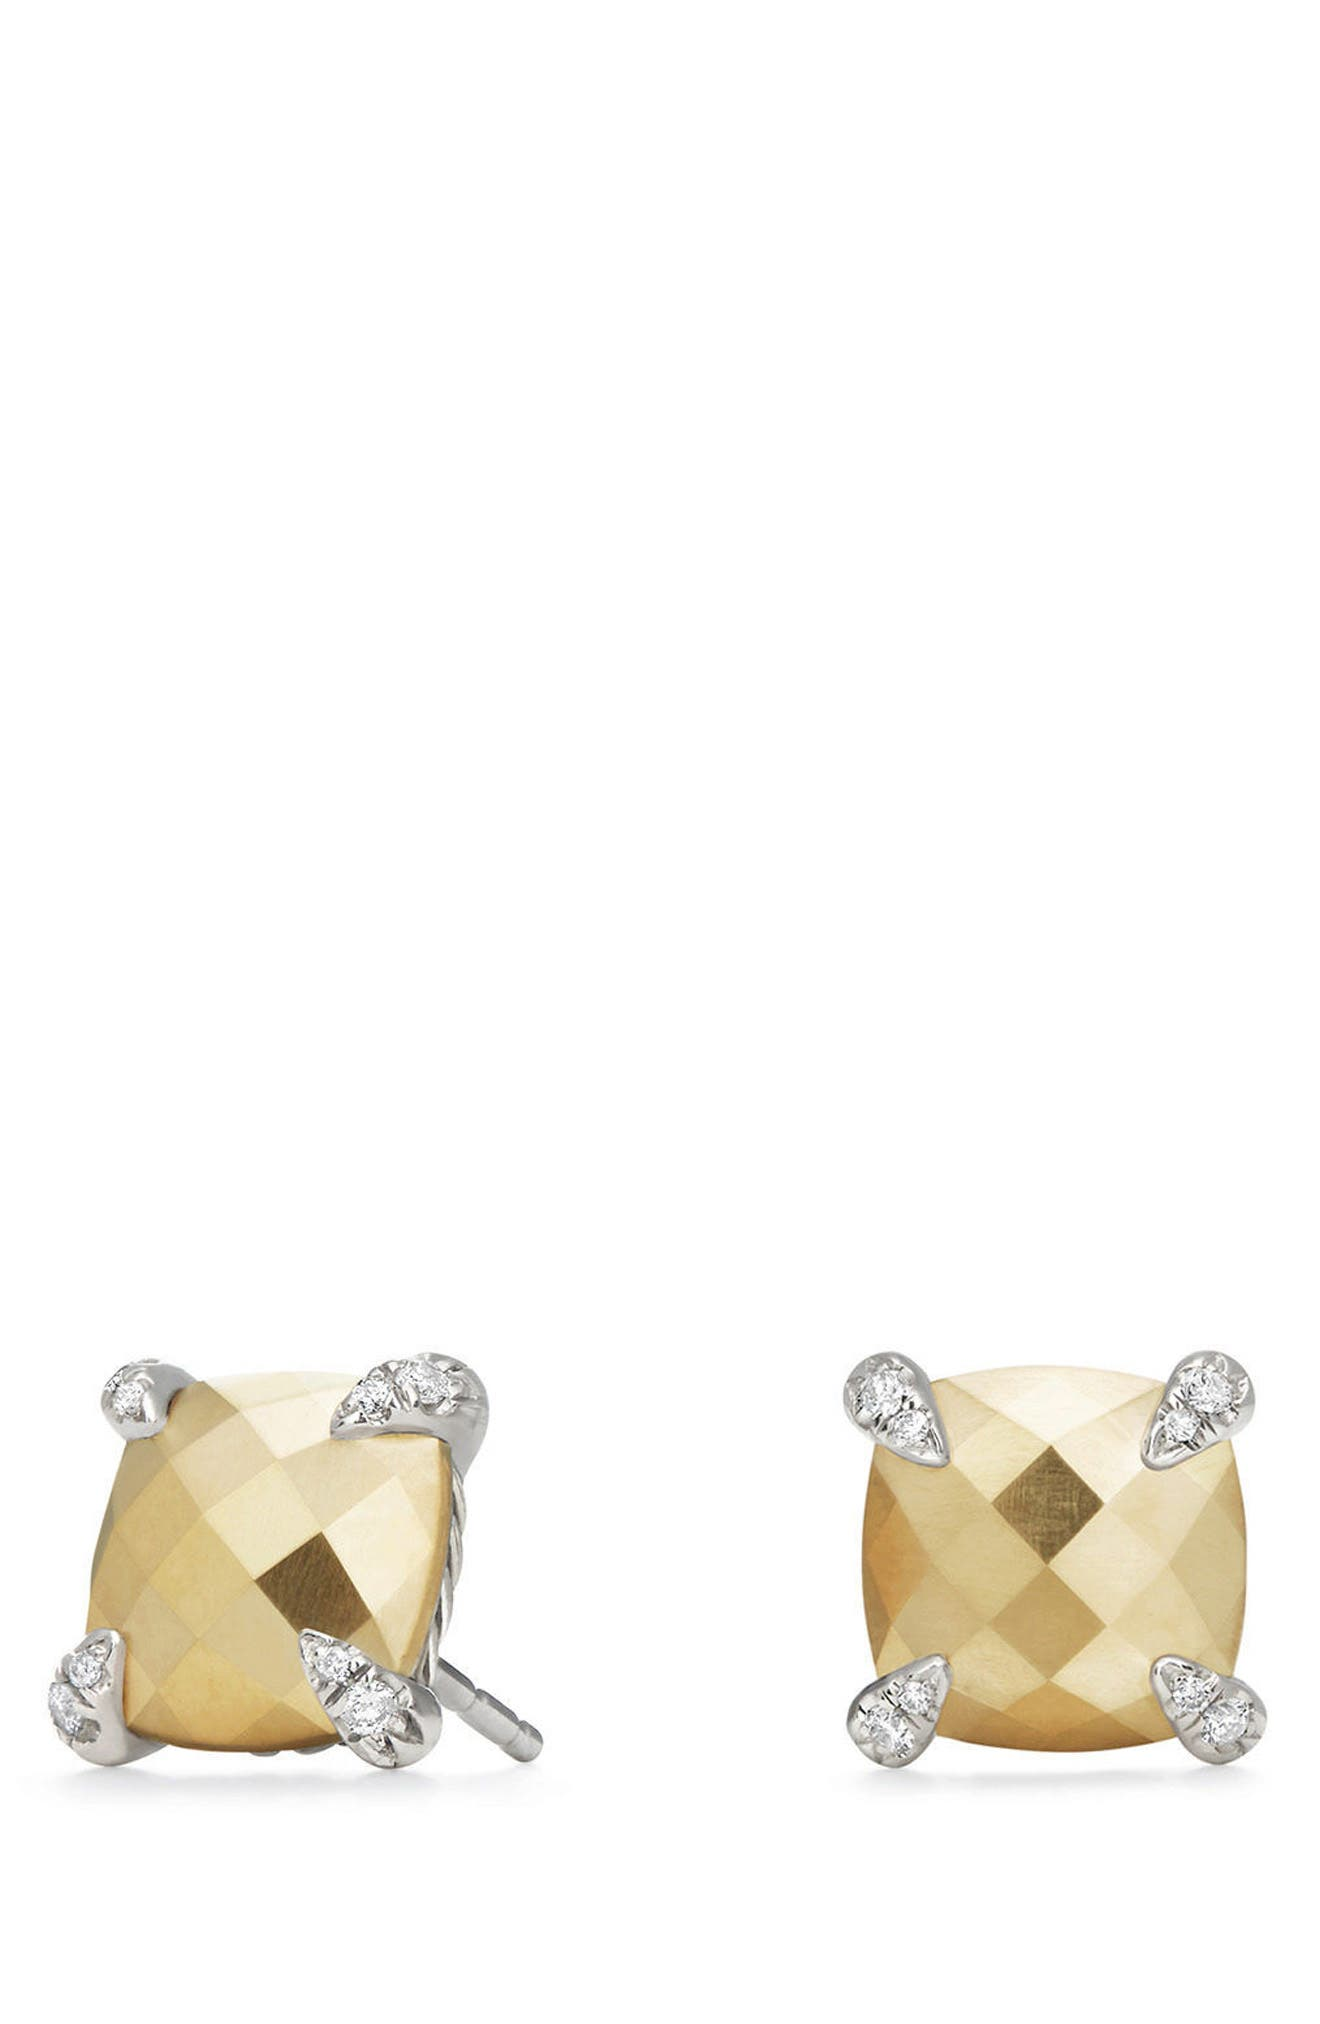 Alternate Image 1 Selected - David Yurman Châtelaine Earrings with Diamonds